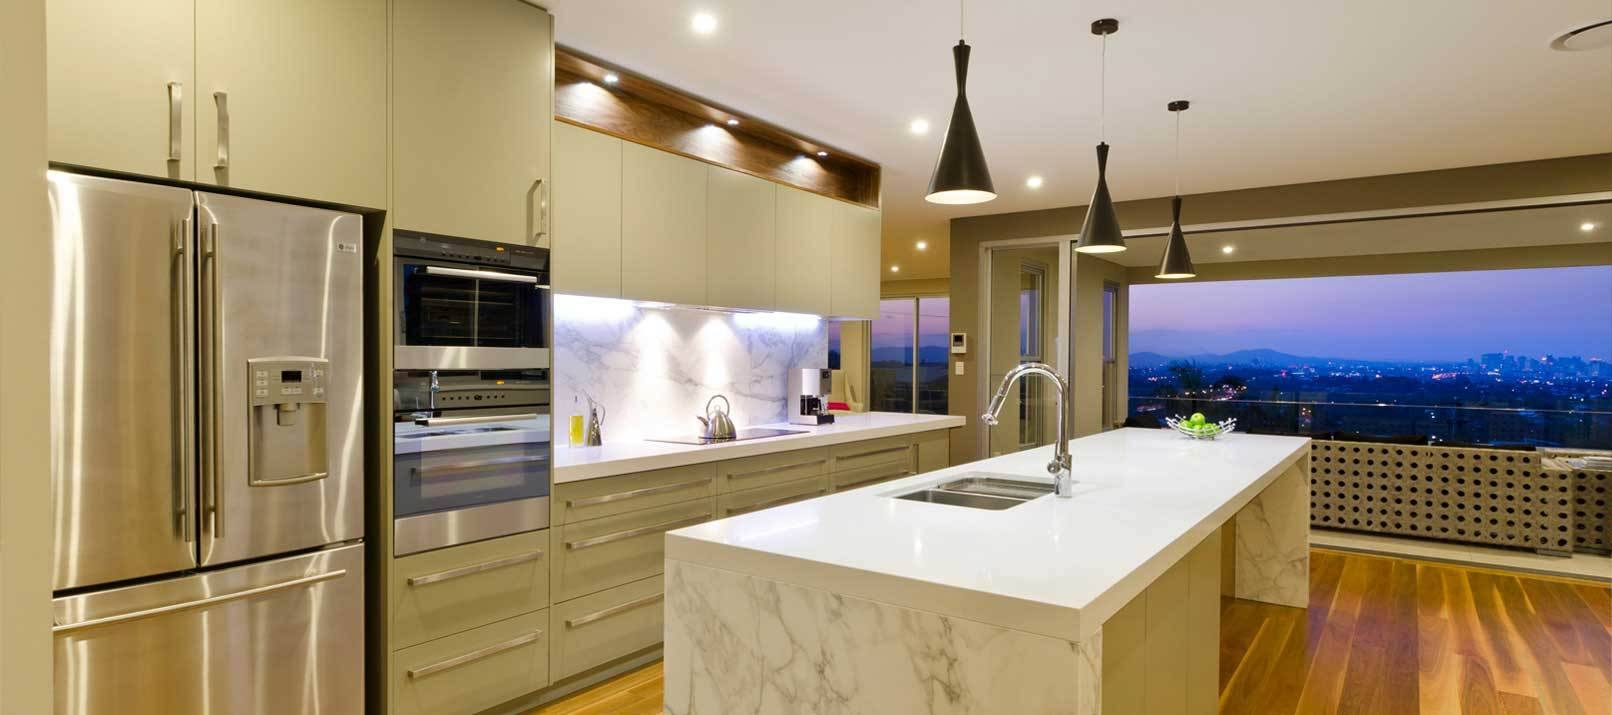 How to effectively plan your new kitchen designer kitchens for New kitchen ideas 2016